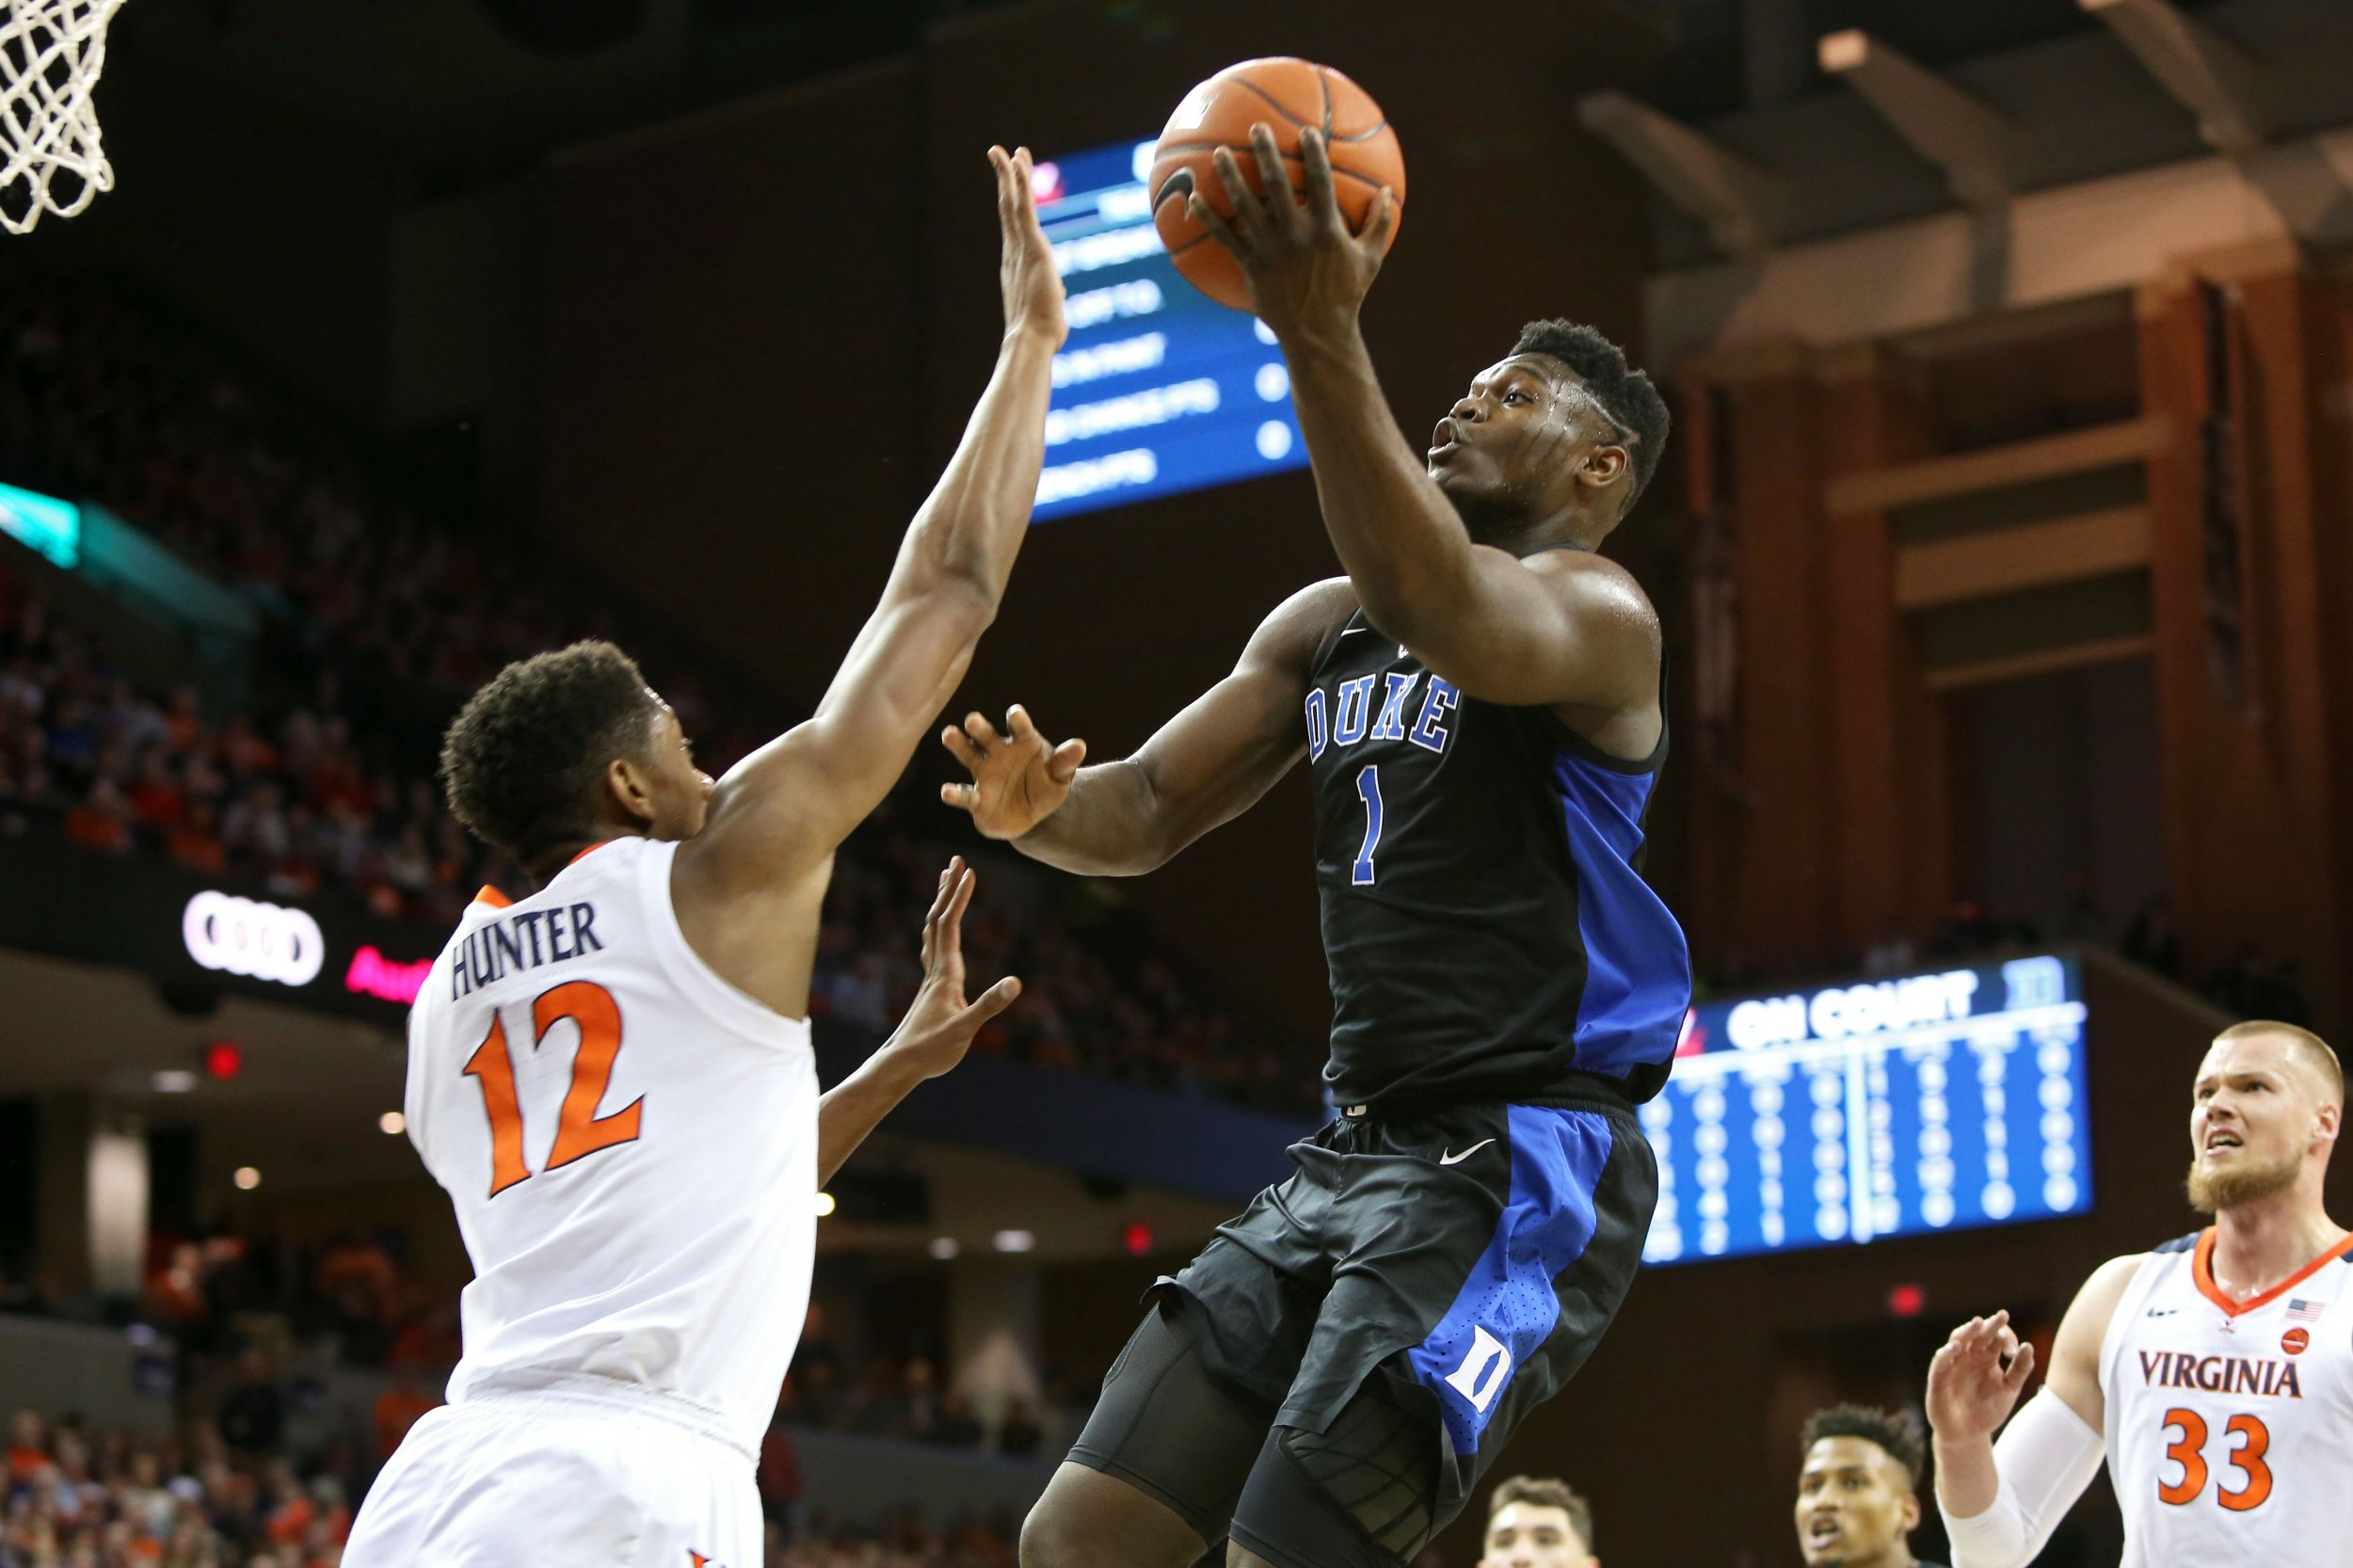 best sneakers c8a0d 398c6 Video: Zion Williamson Pulls off Impossible Block in Duke's ...